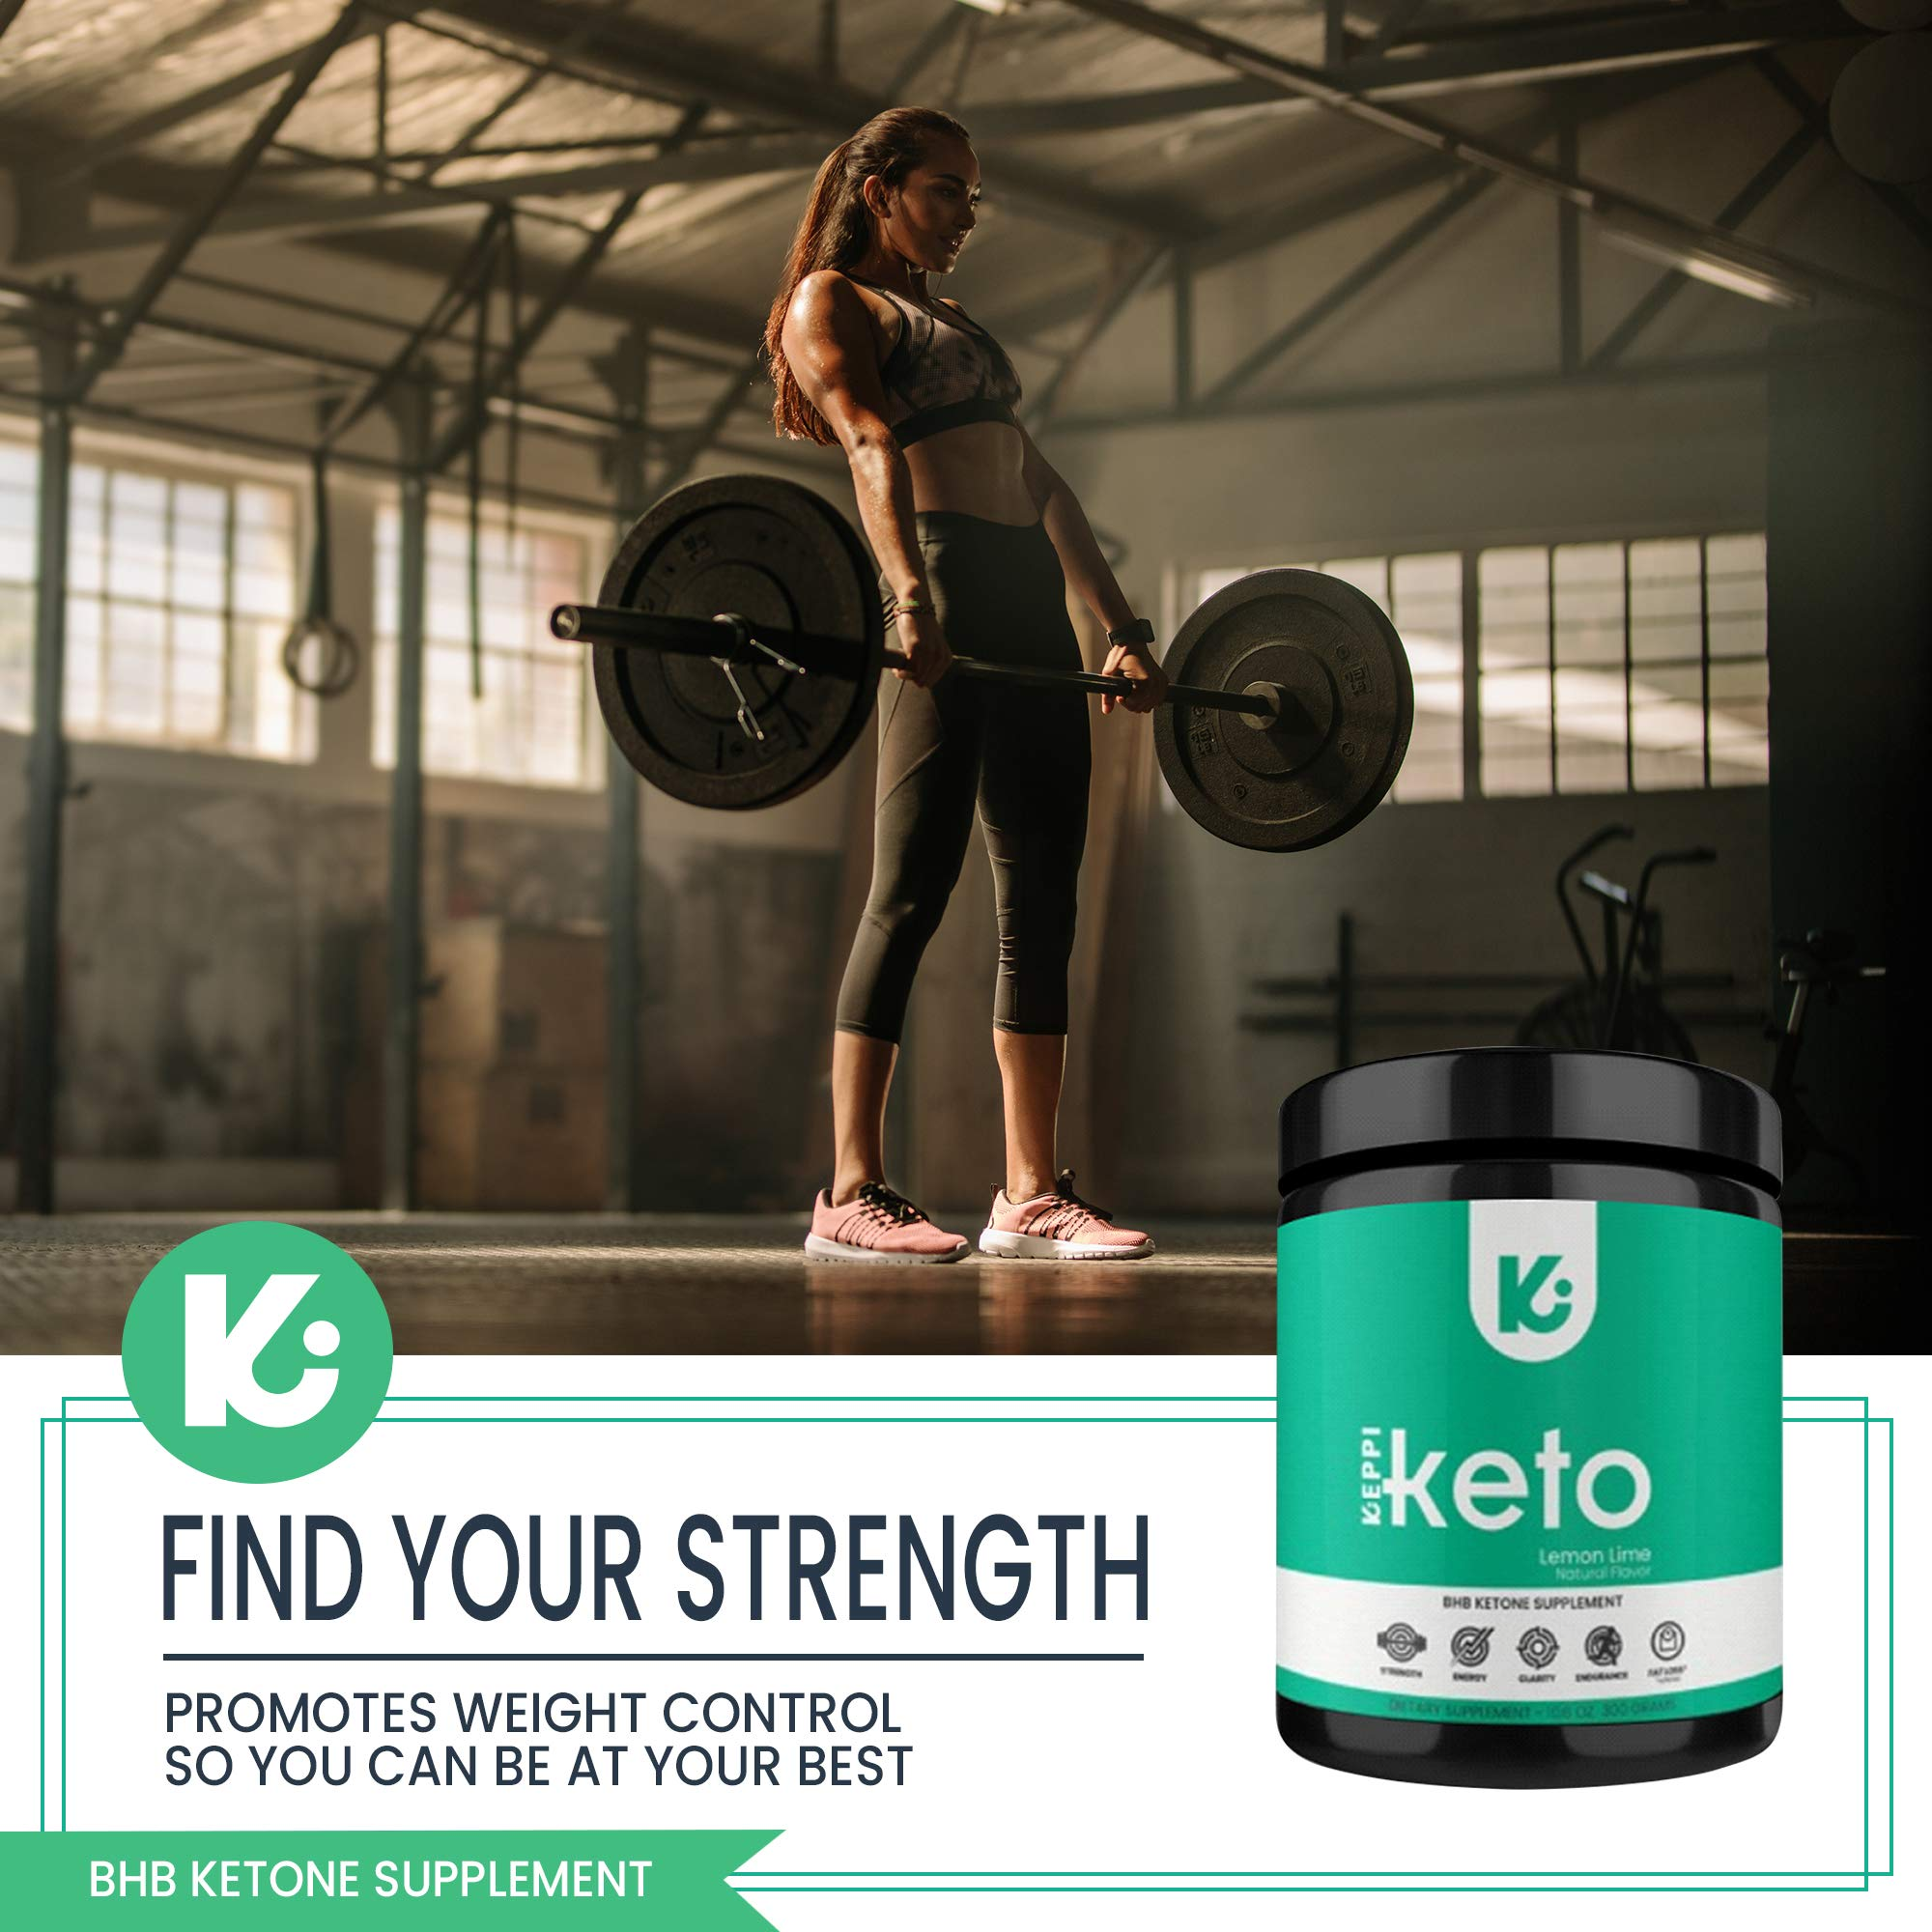 KEPPI Keto Exogenous Ketones Powder Supplement: Patented BHB Salts Formulated to Increase Energy, Burn Fat, Maintain Ketosis and Mental Focus on The Ketogenic Diet by Keppi (Image #6)